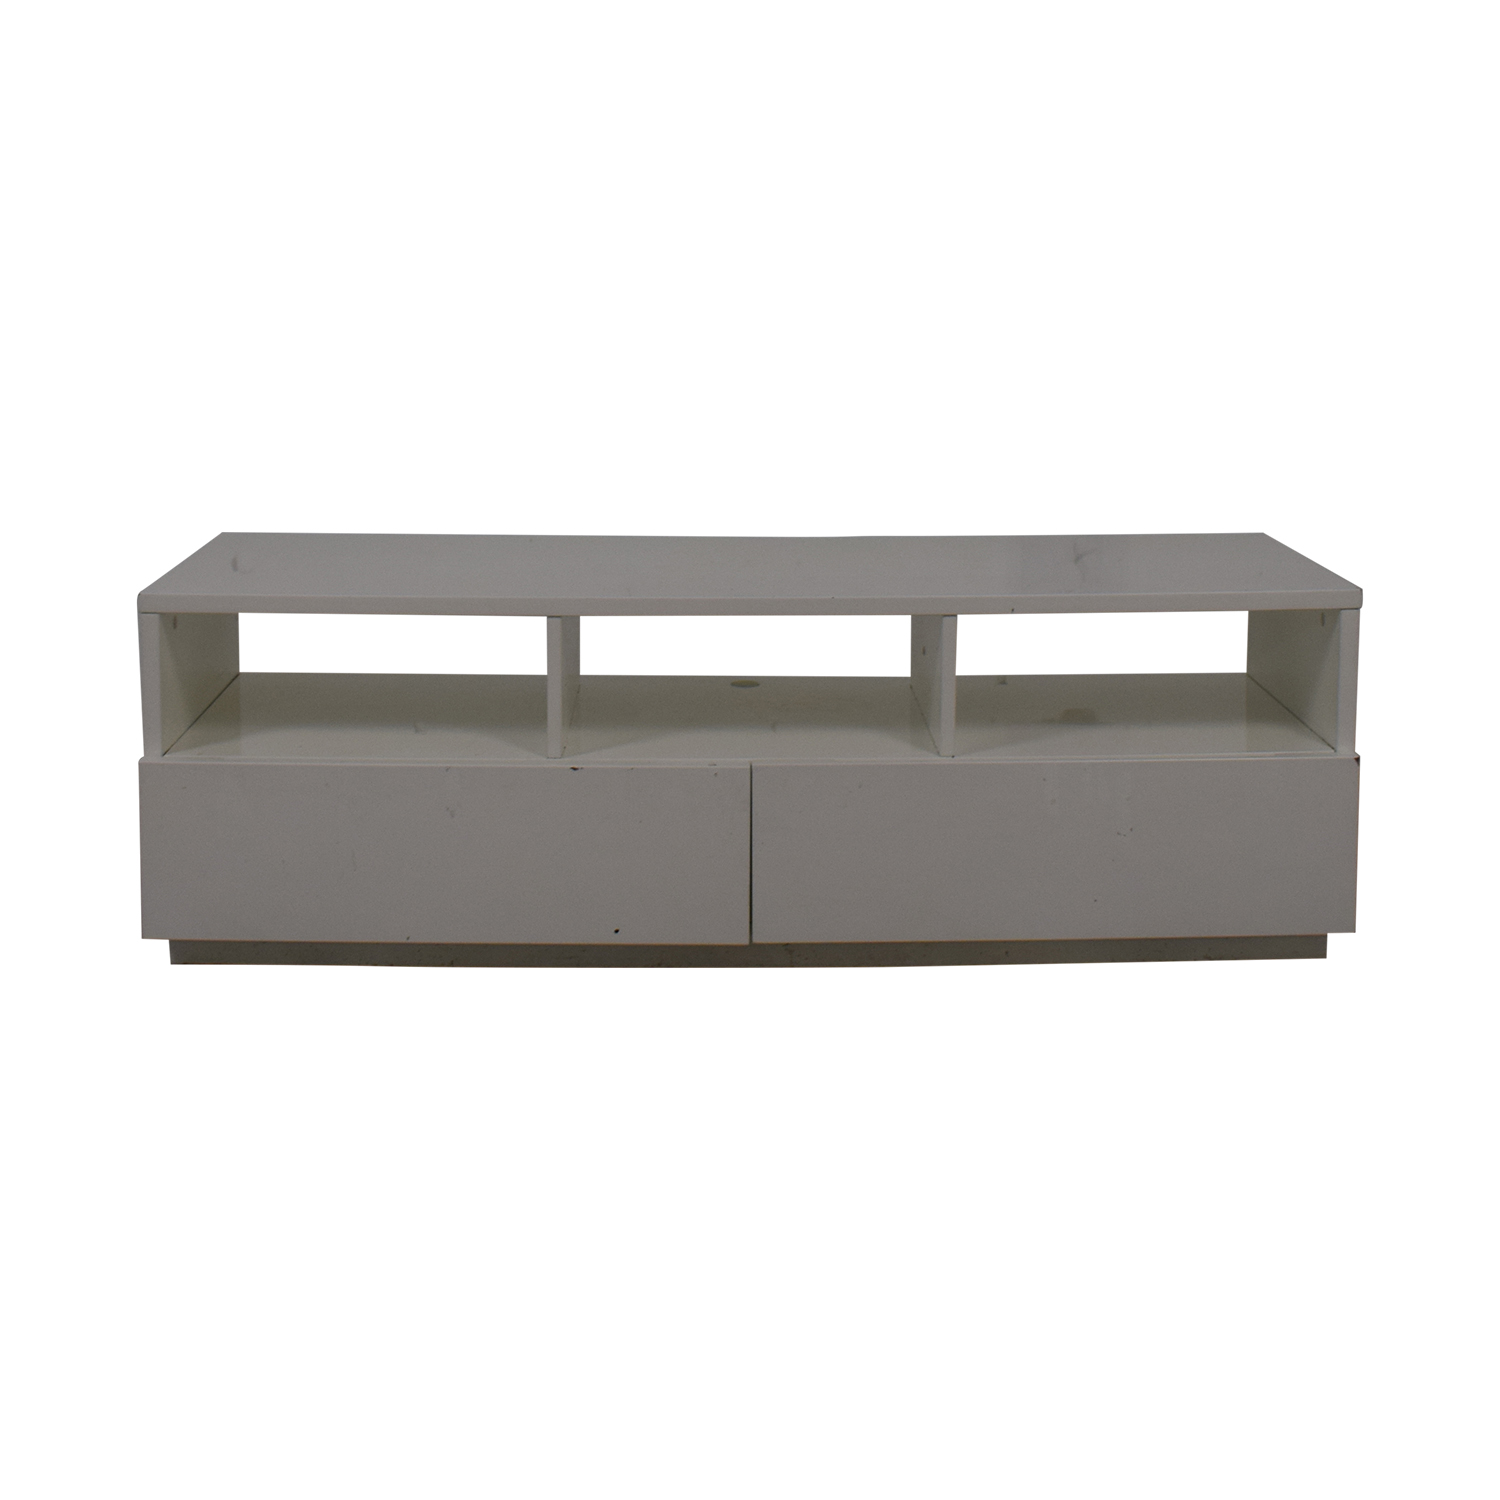 Crate & Barrel CB2 Chill White Media Console price